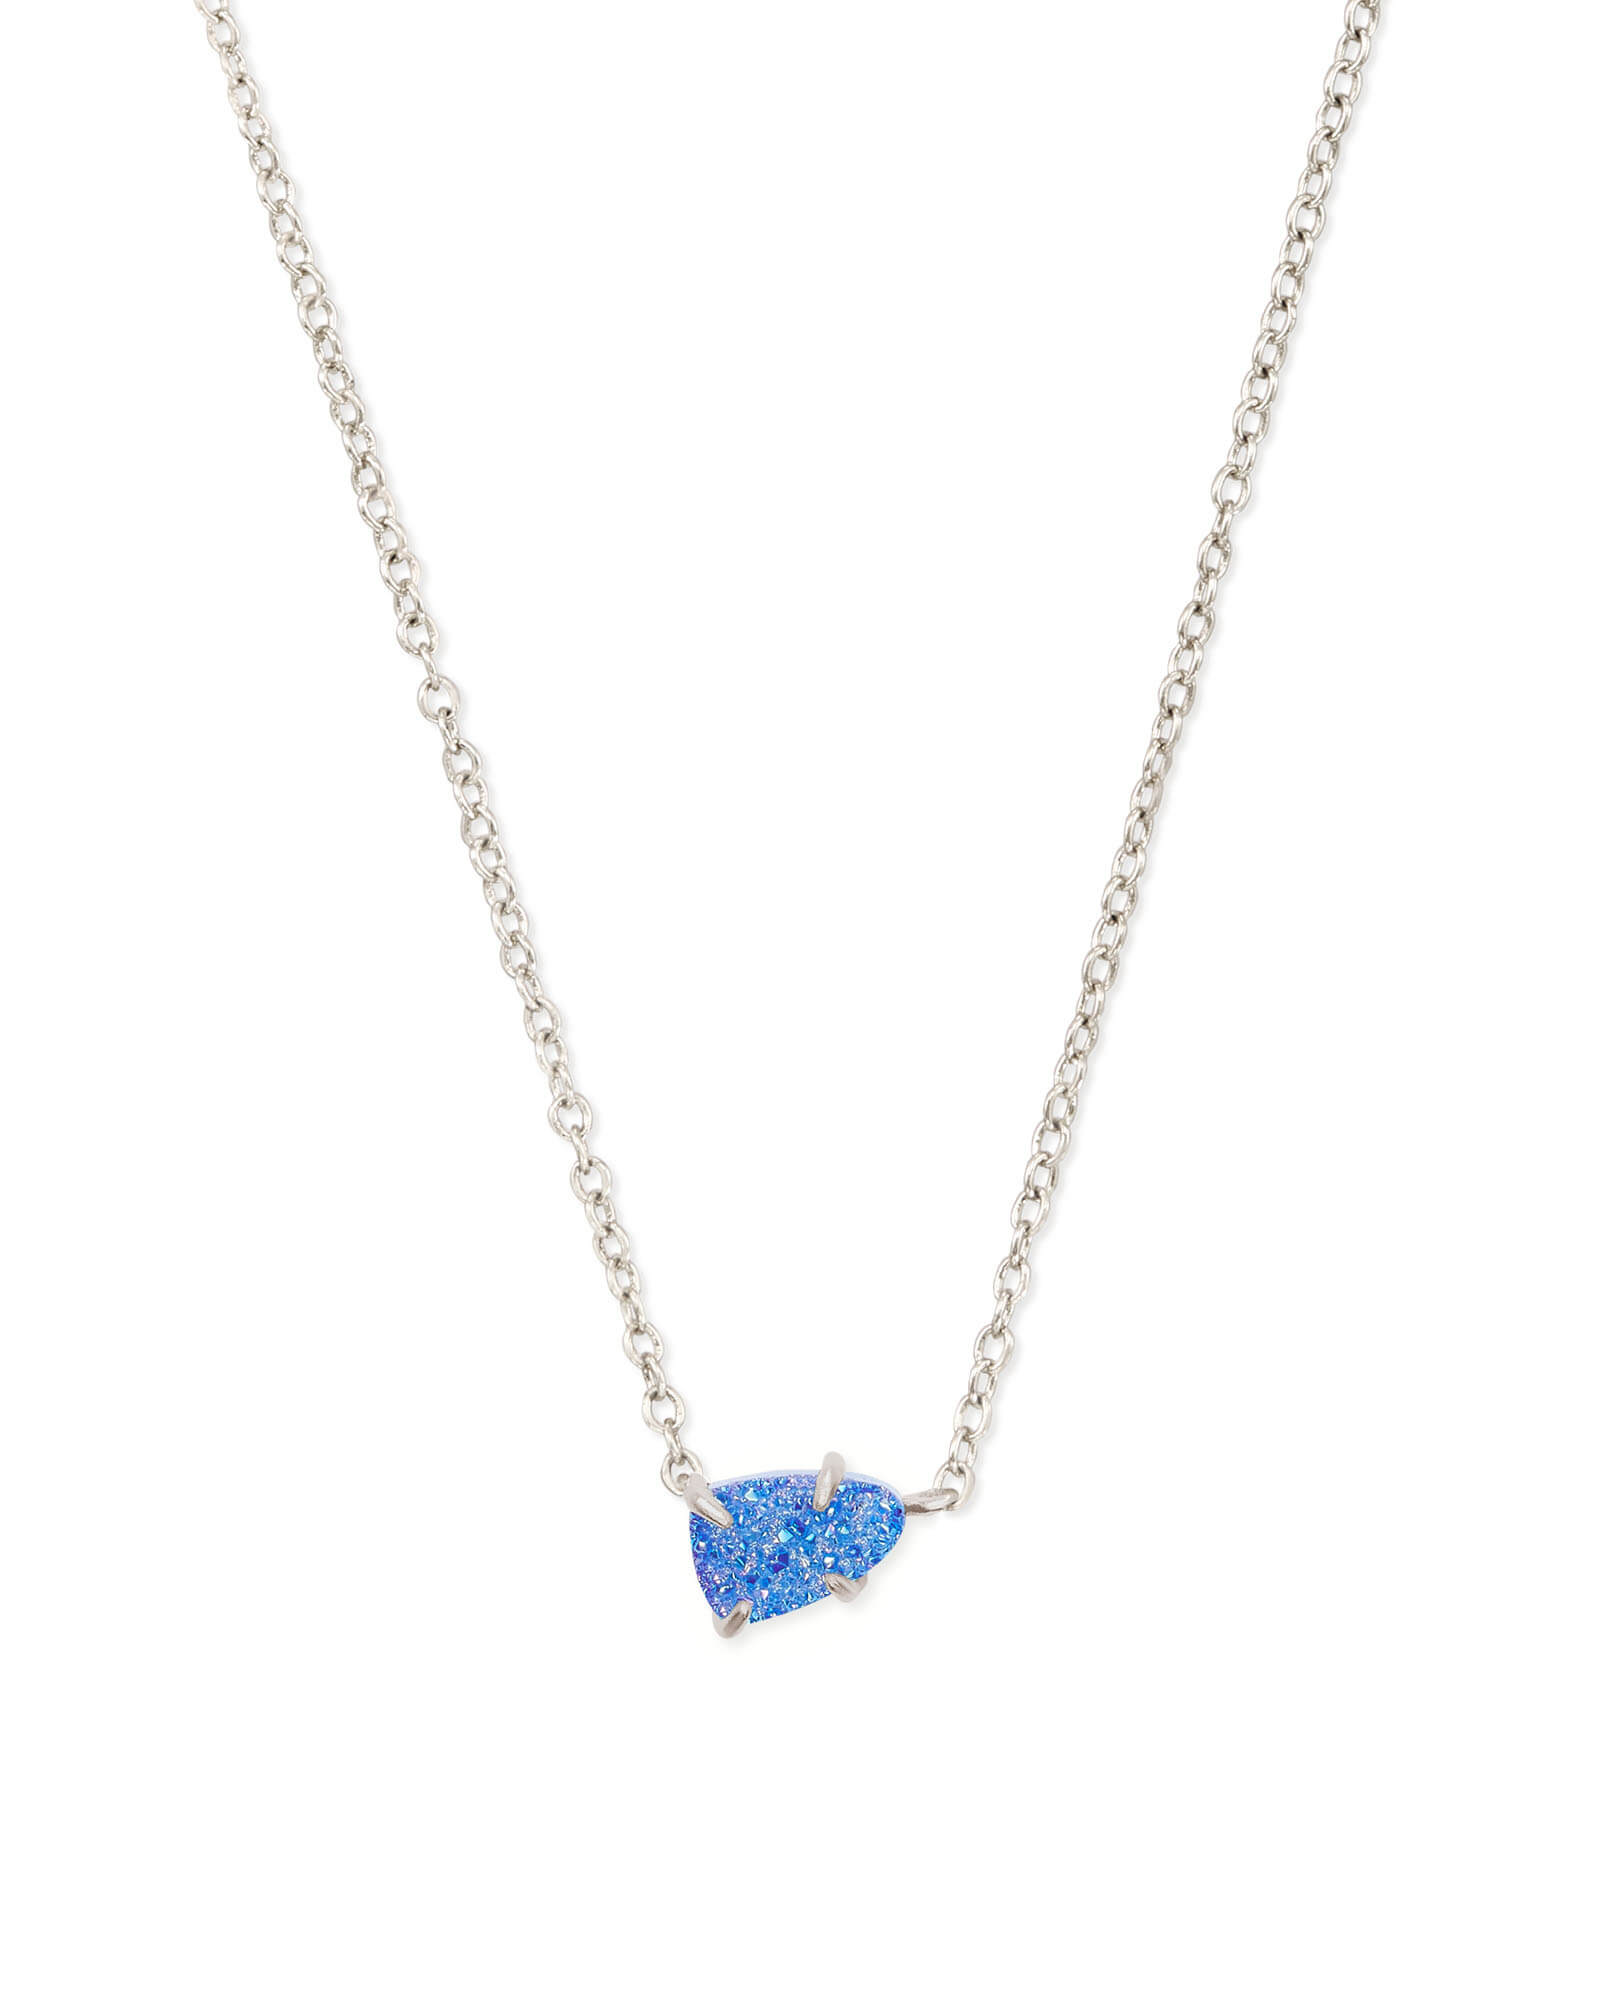 Helga Silver Pendant Necklace in Periwinkle Drusy